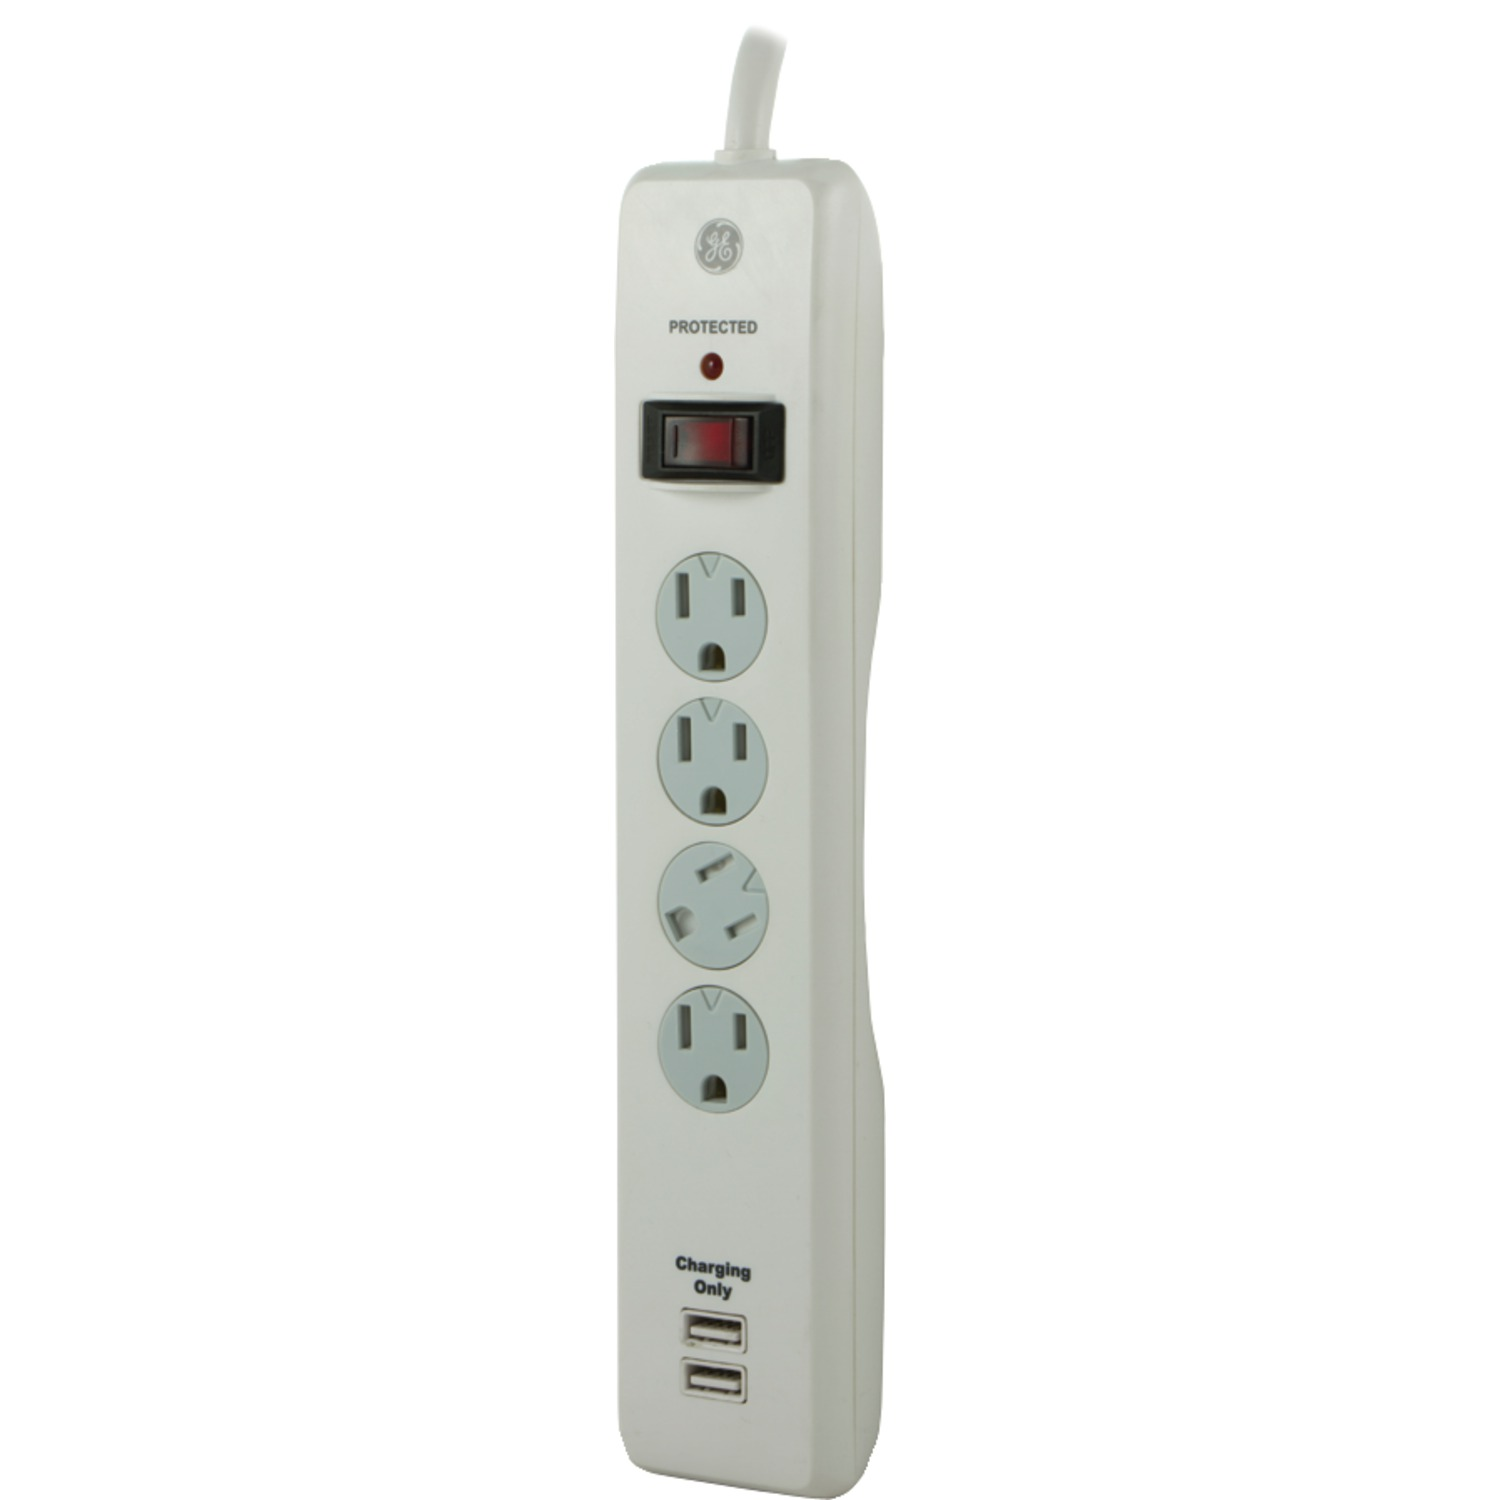 ge 14090 4 outlet surge protector with 2 usb ports. Black Bedroom Furniture Sets. Home Design Ideas